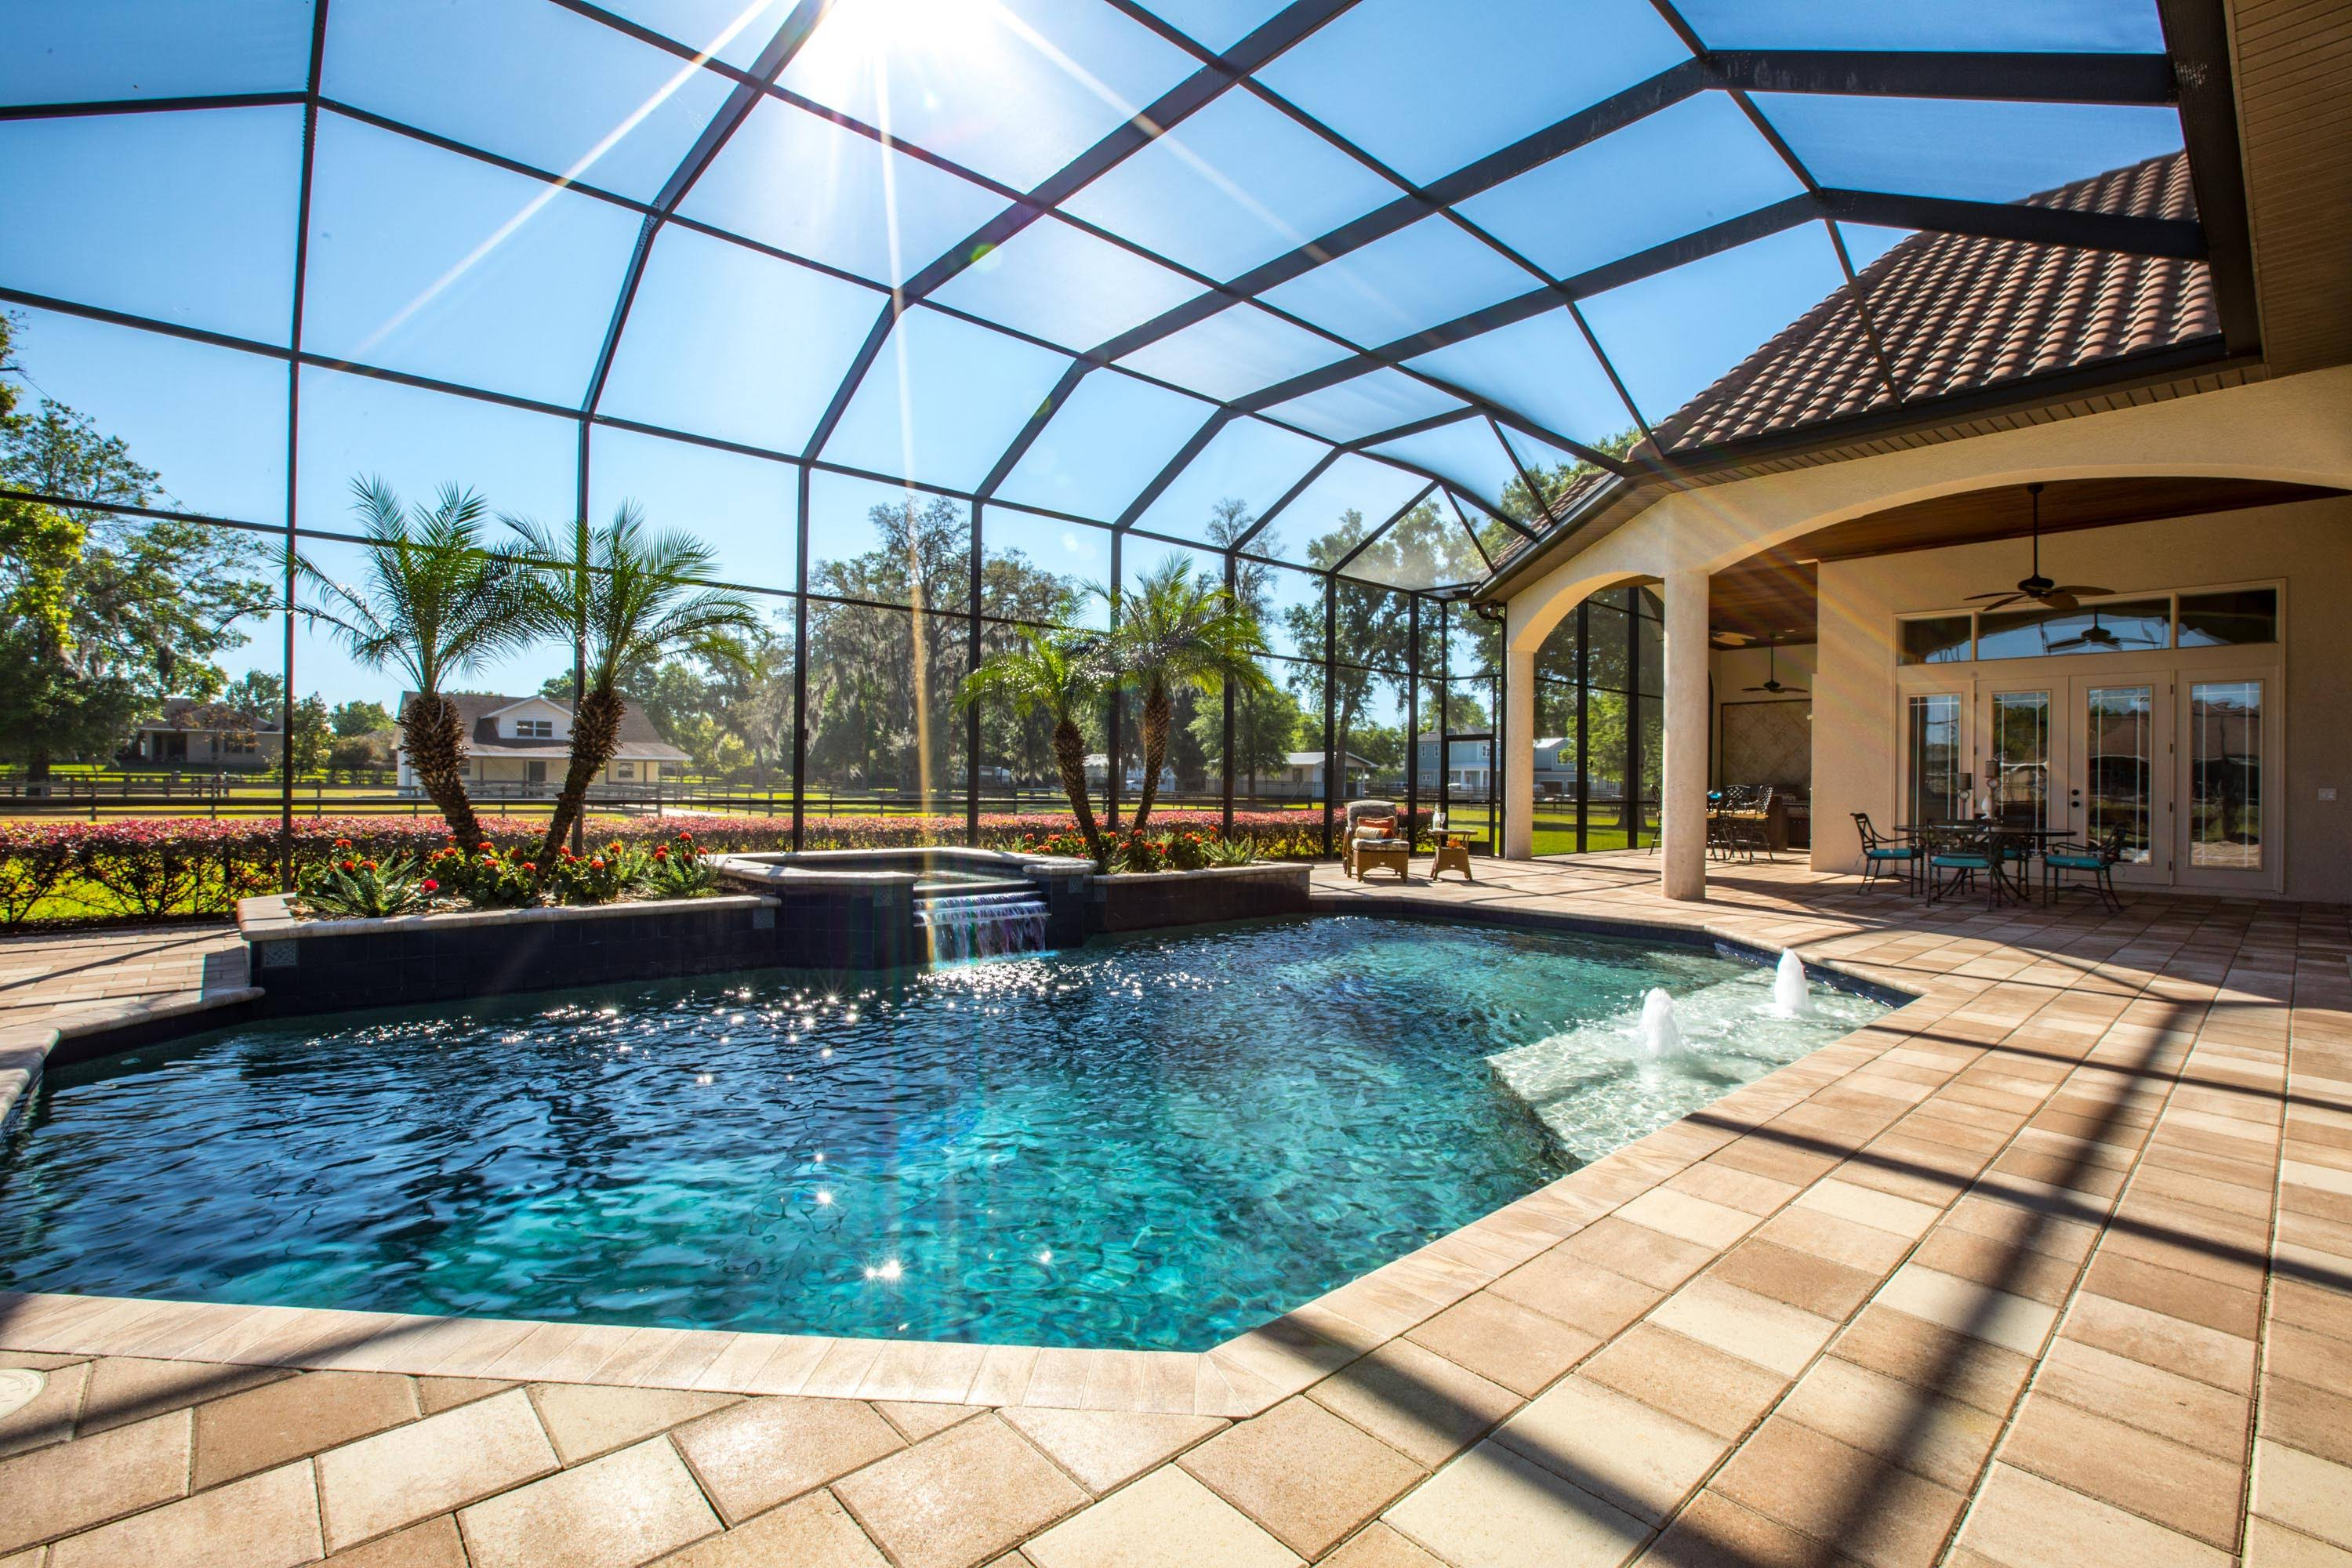 Tampa pool homes for sale